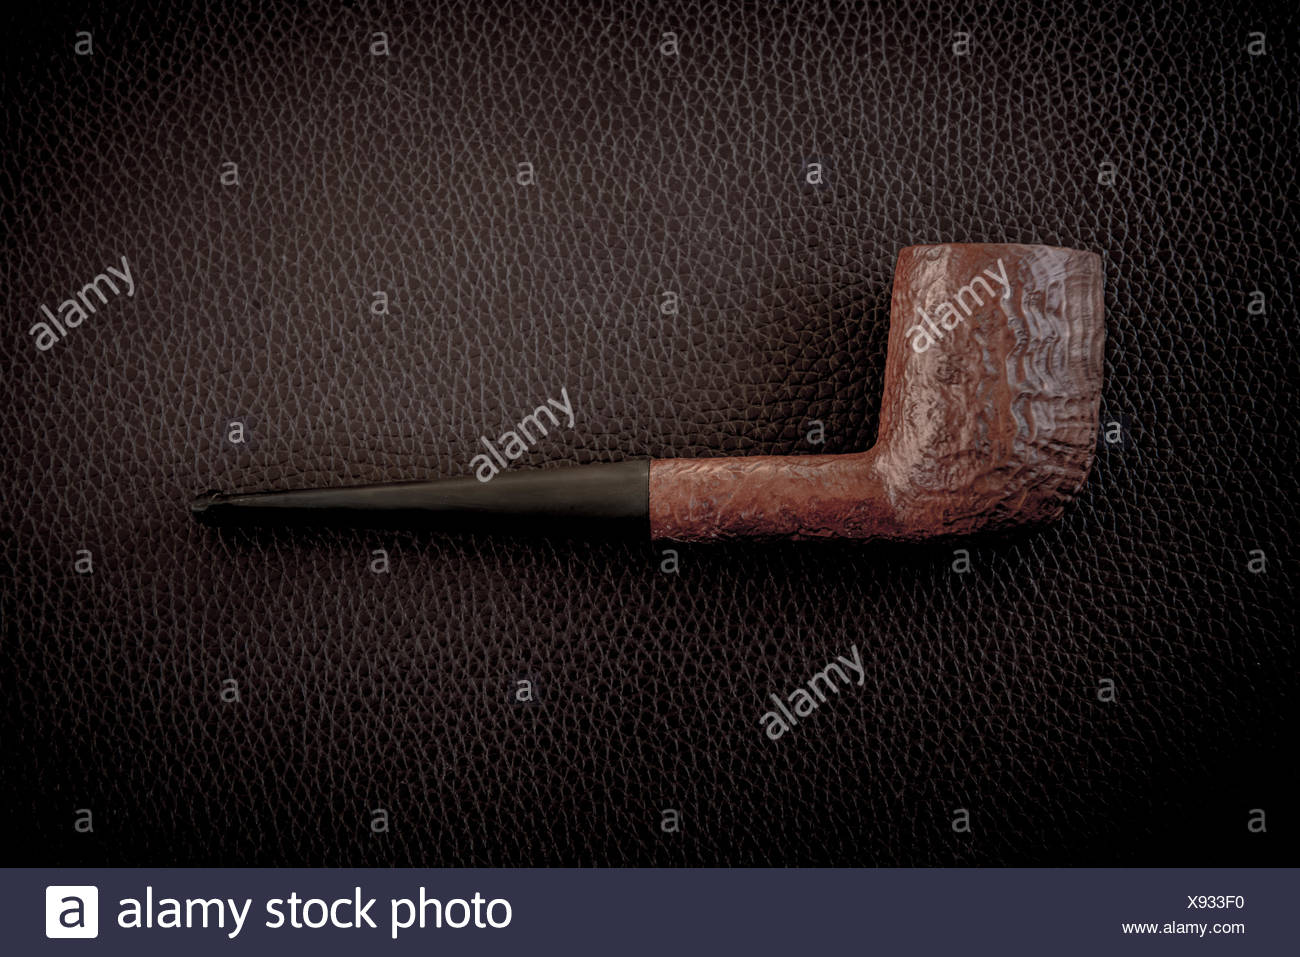 Close-up view of old pipe - Stock Image